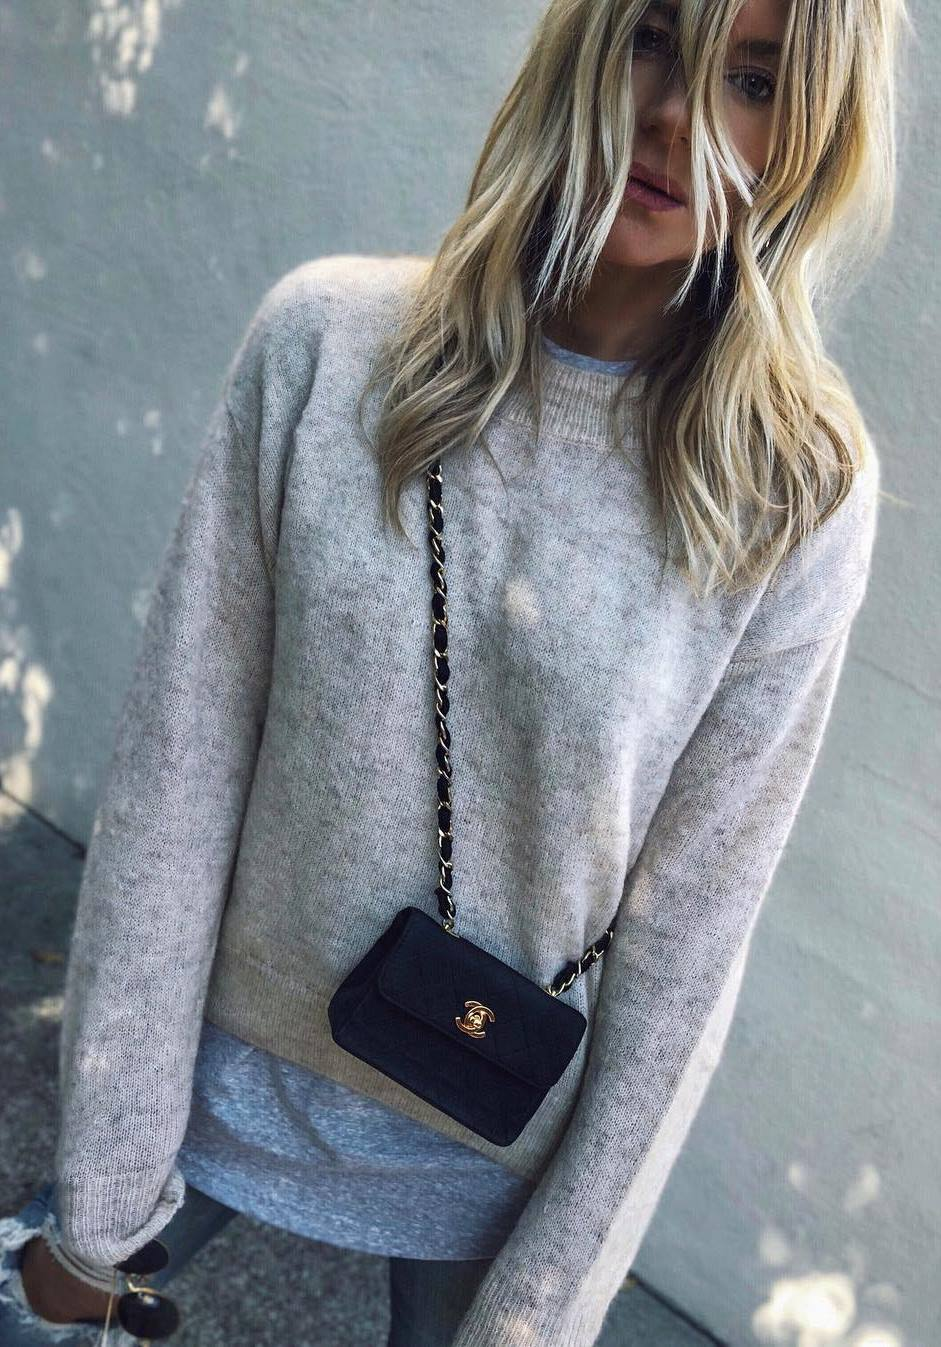 what to wear with a crossbody bag : oversized sweater + top + jeans